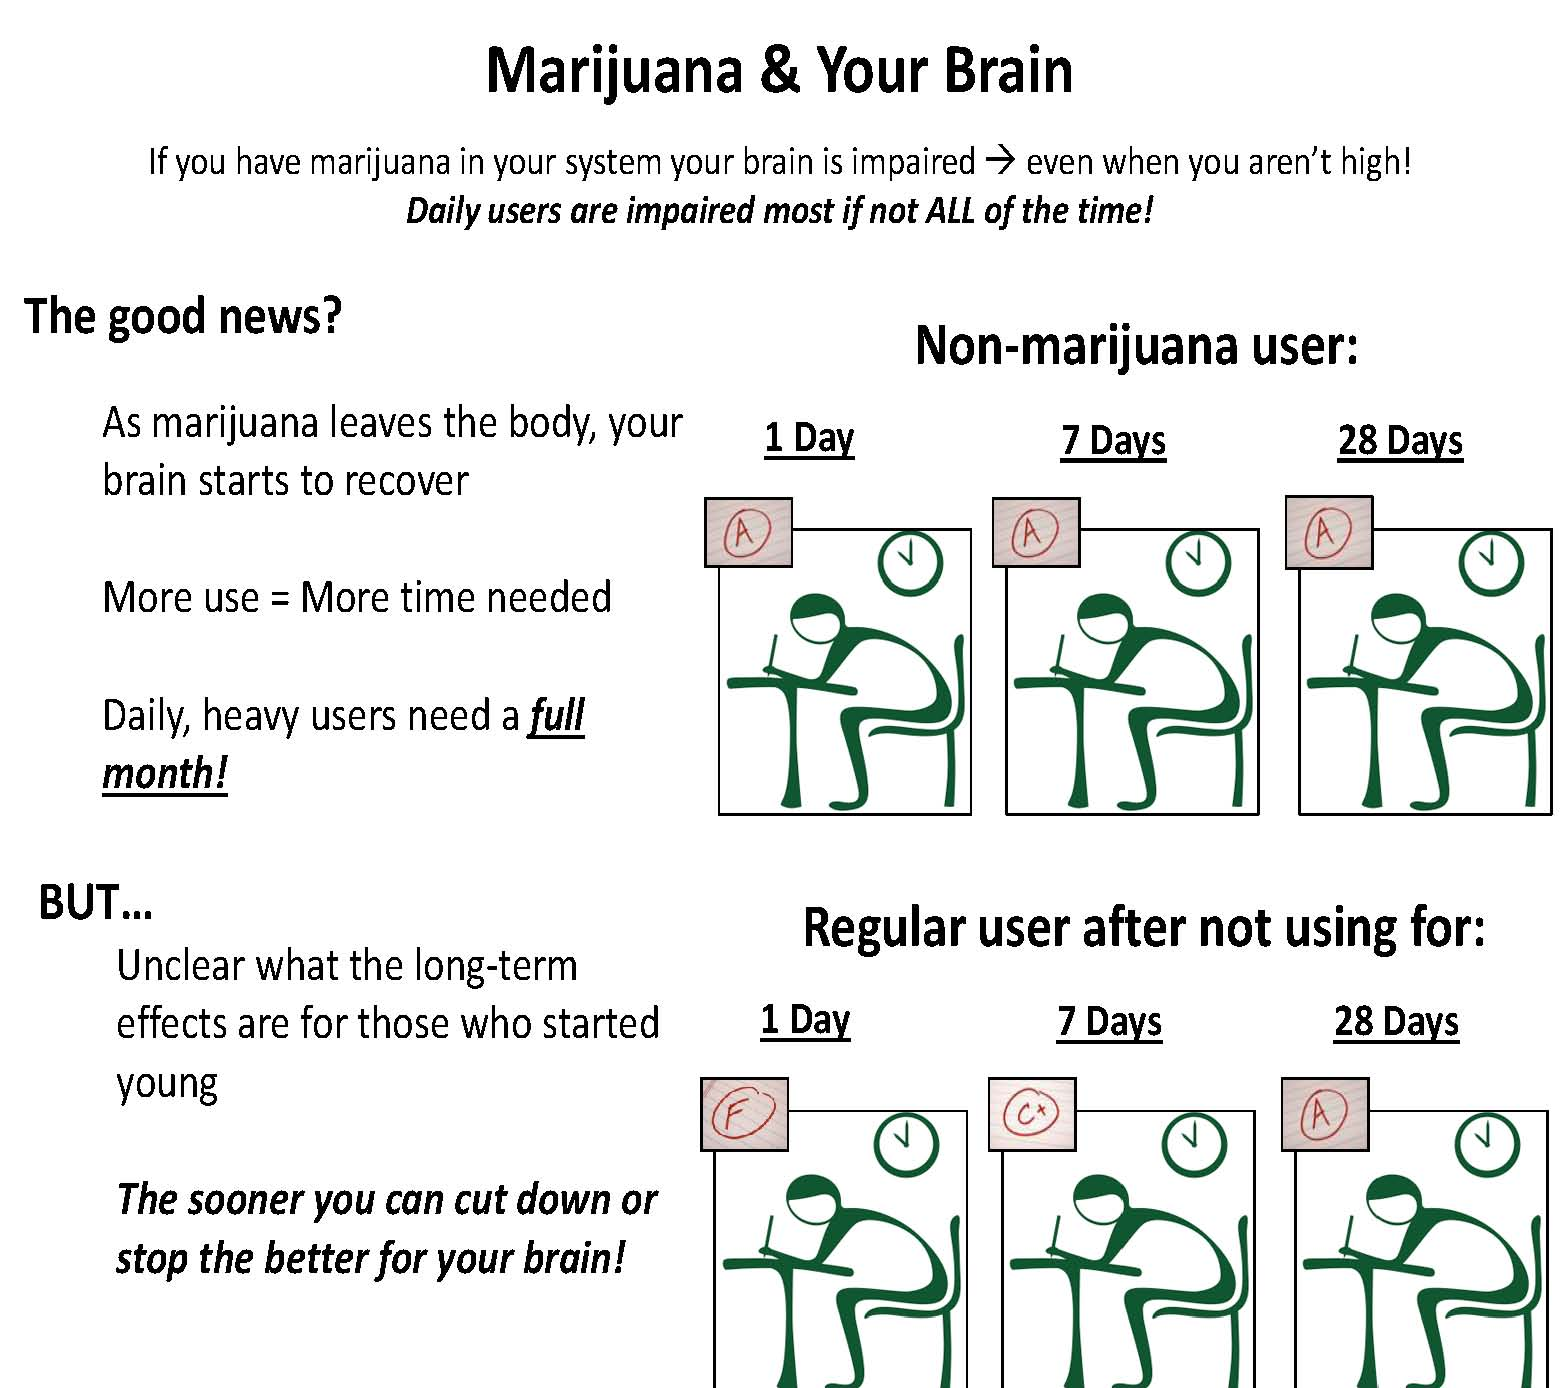 Marijuana and Your Brain